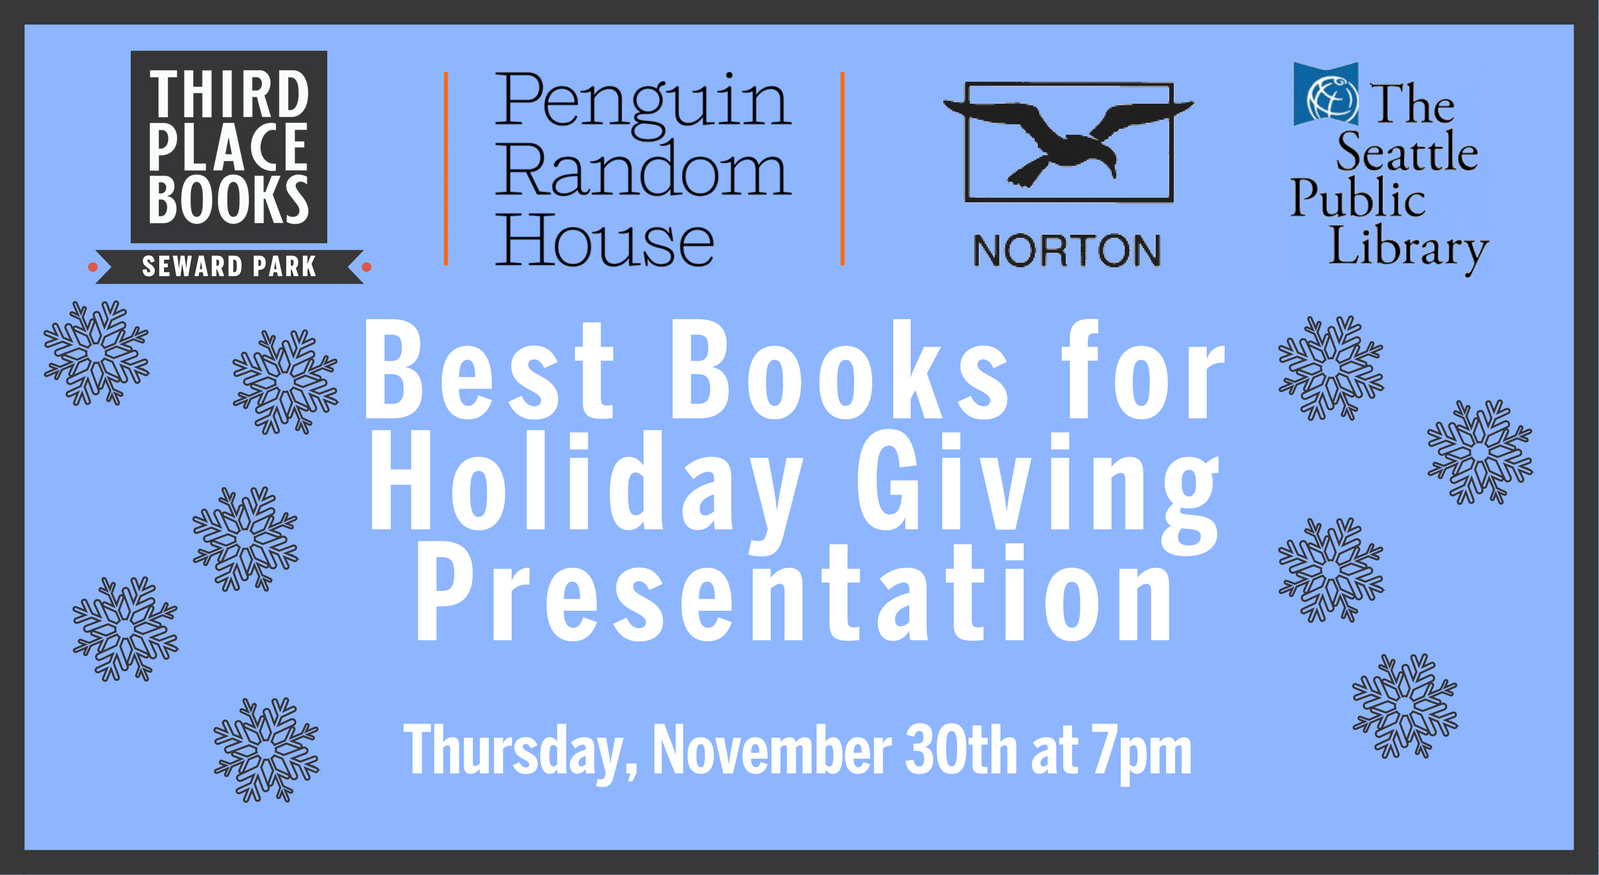 Best Books for Holiday Giving Presentation